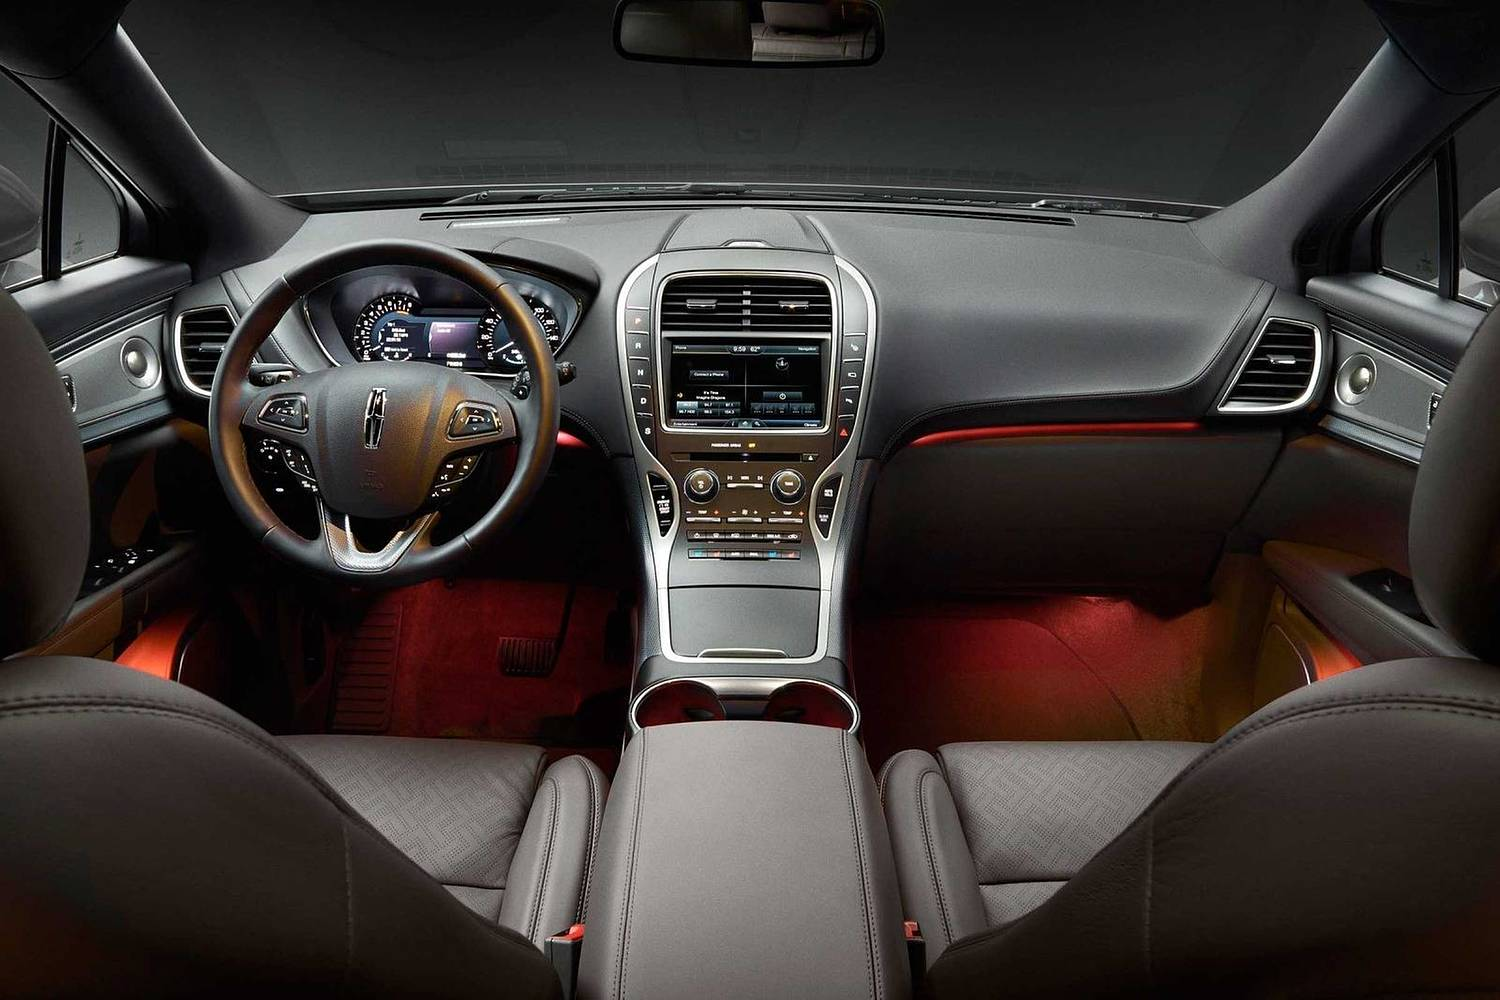 Lincoln MKX Black Label 4dr SUV Dashboard. Muse Theme Shown. (2017 model year shown)